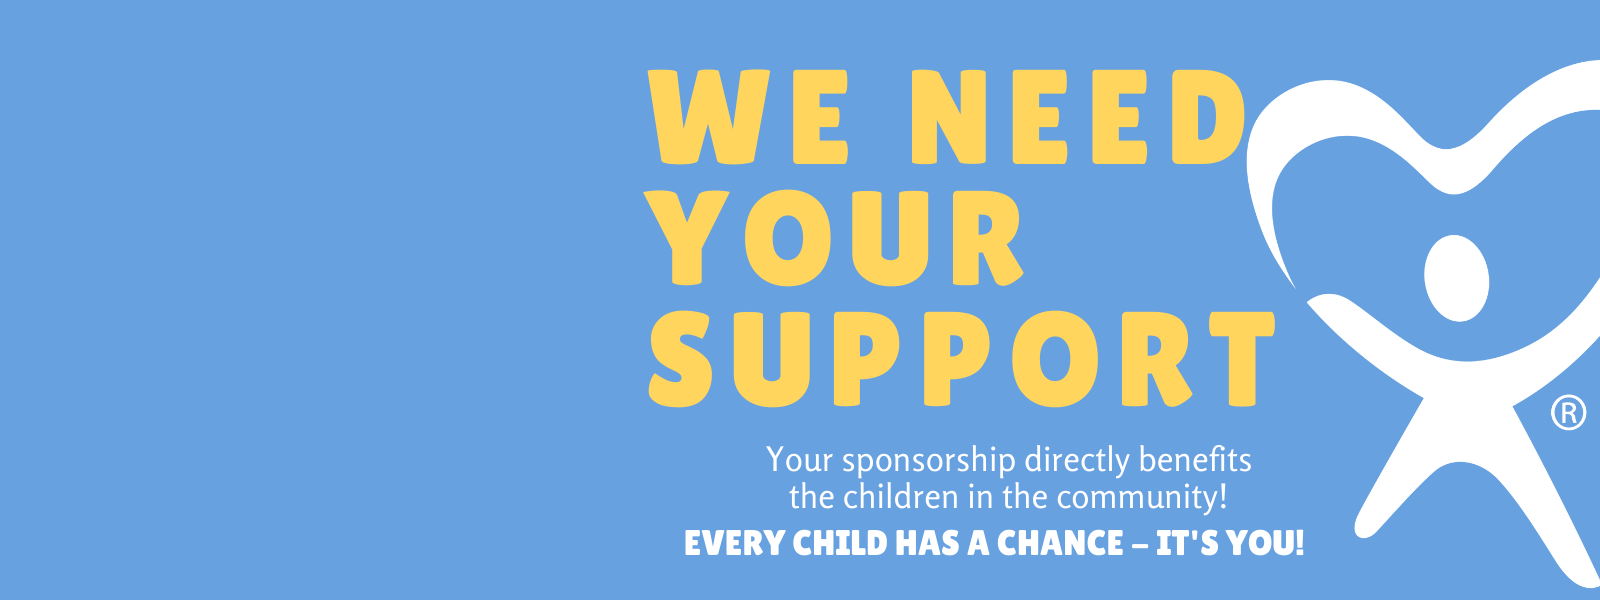 Annual Supporter with Payment Options image